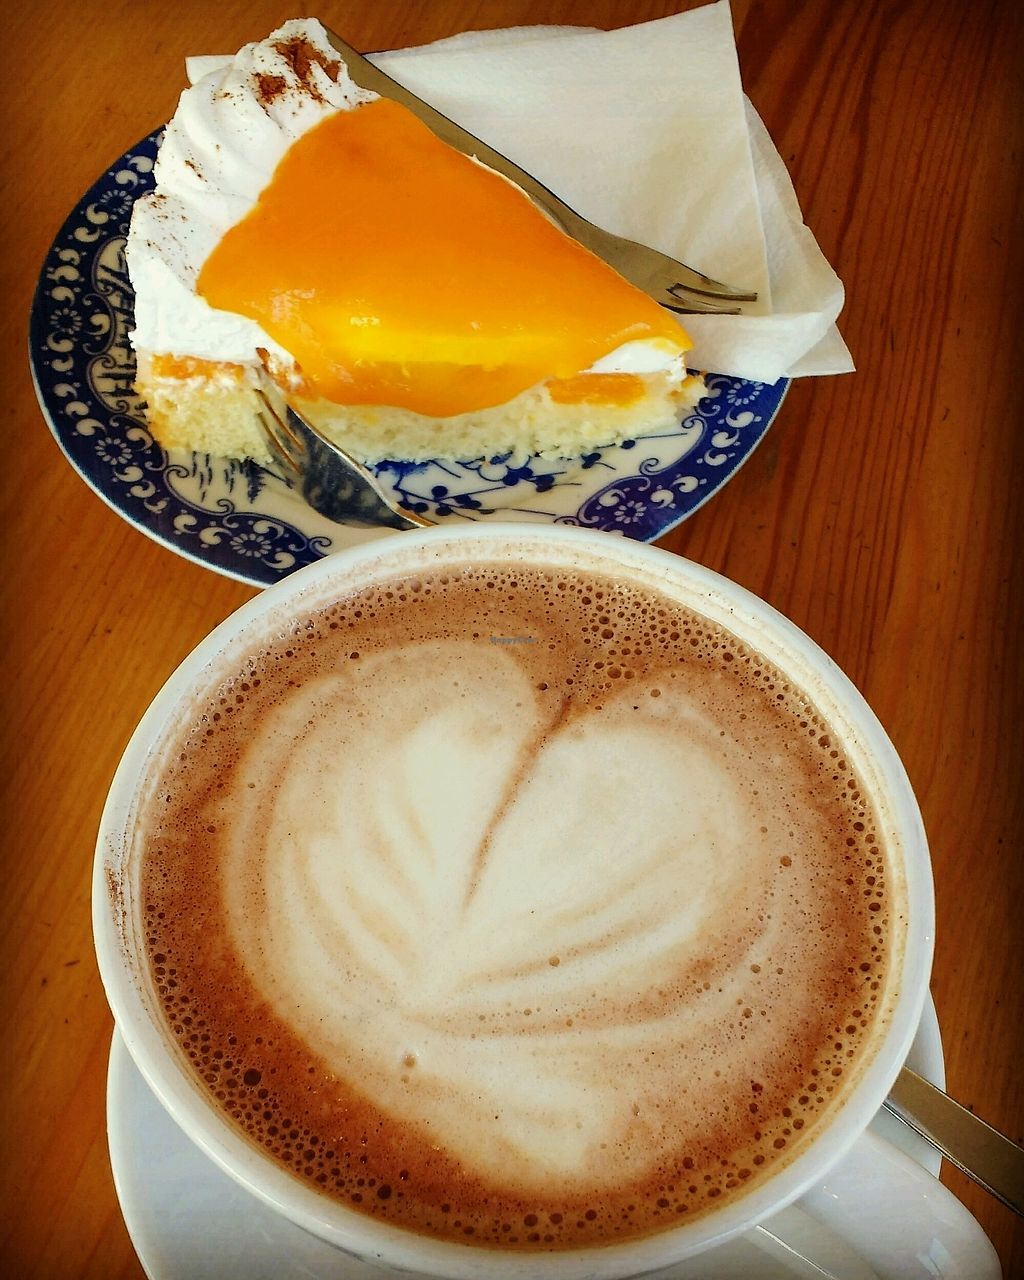 "Photo of Poffers Cafe  by <a href=""/members/profile/lilScorpio"">lilScorpio</a> <br/>hot soy chocolate and tangerine cake <br/> February 19, 2018  - <a href='/contact/abuse/image/82898/361365'>Report</a>"